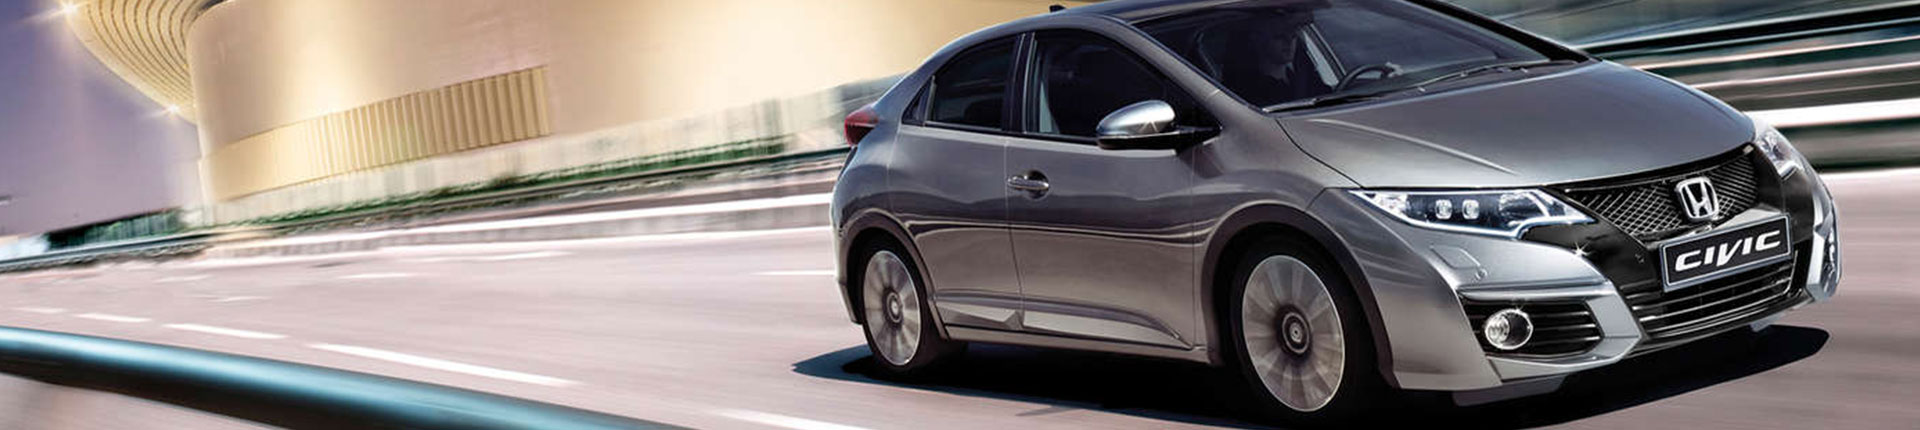 civic-slider4